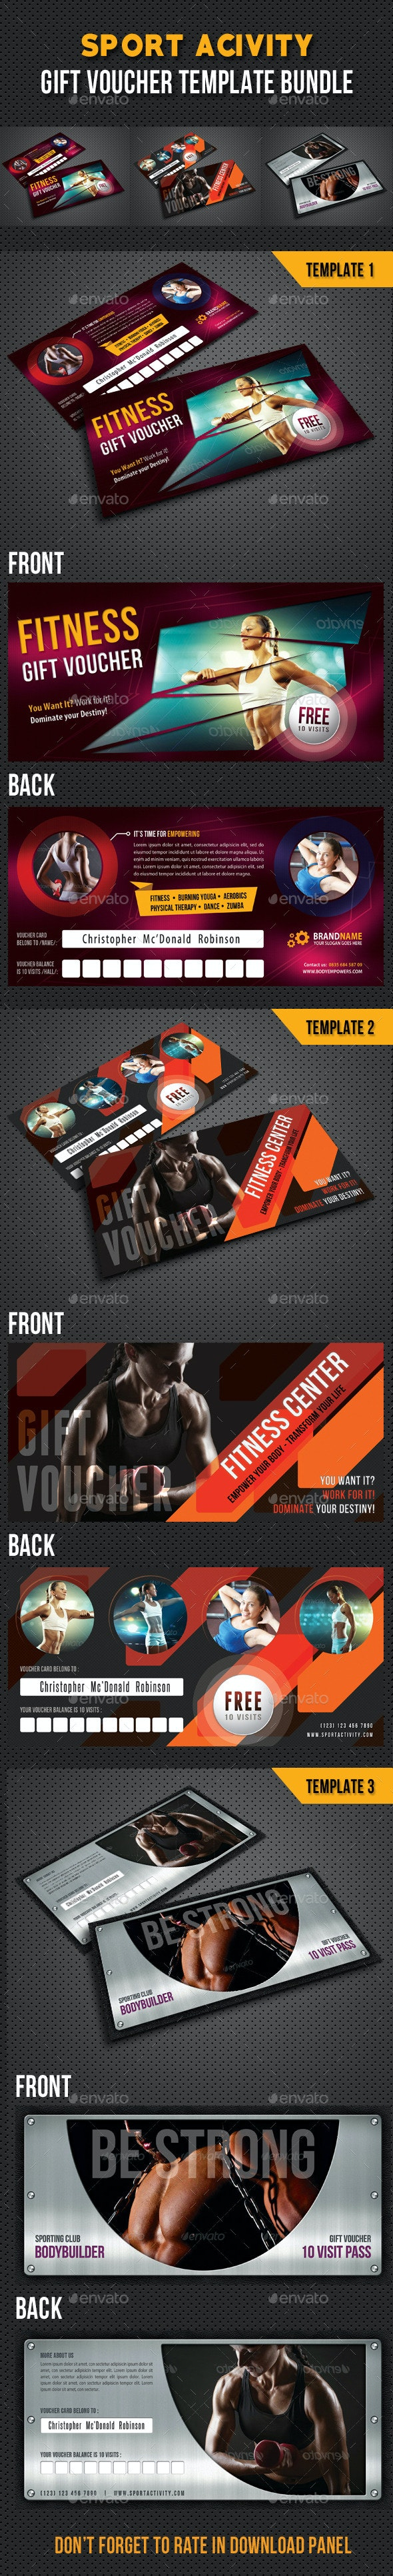 3 in 1 Sport Activity Gift Voucher Bundle 02 - Cards & Invites Print Templates